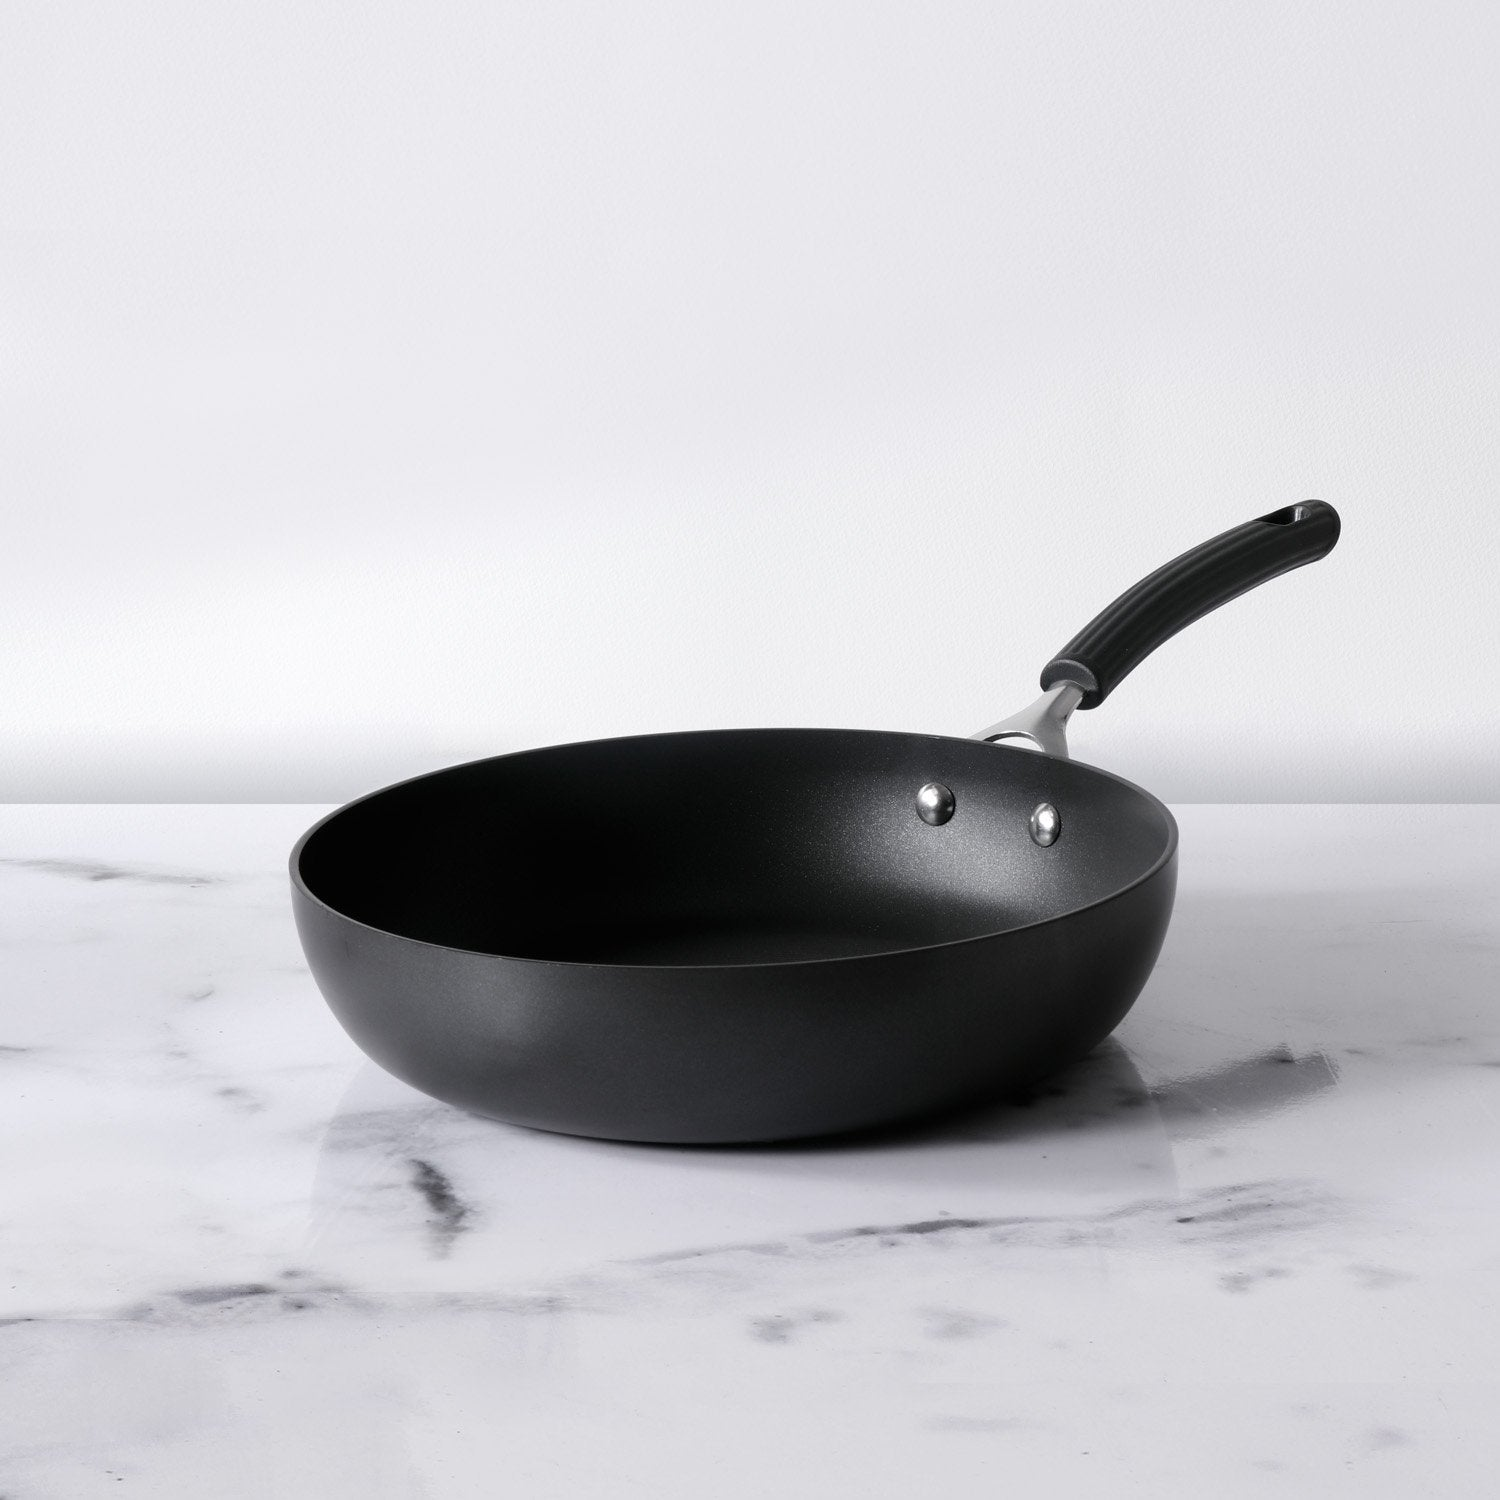 Circulon Origins 28cm Non-Stick + Hard Anodized Frypan/Skillet, Grey (Suitable For Gas & Induction) - Pots and Pans